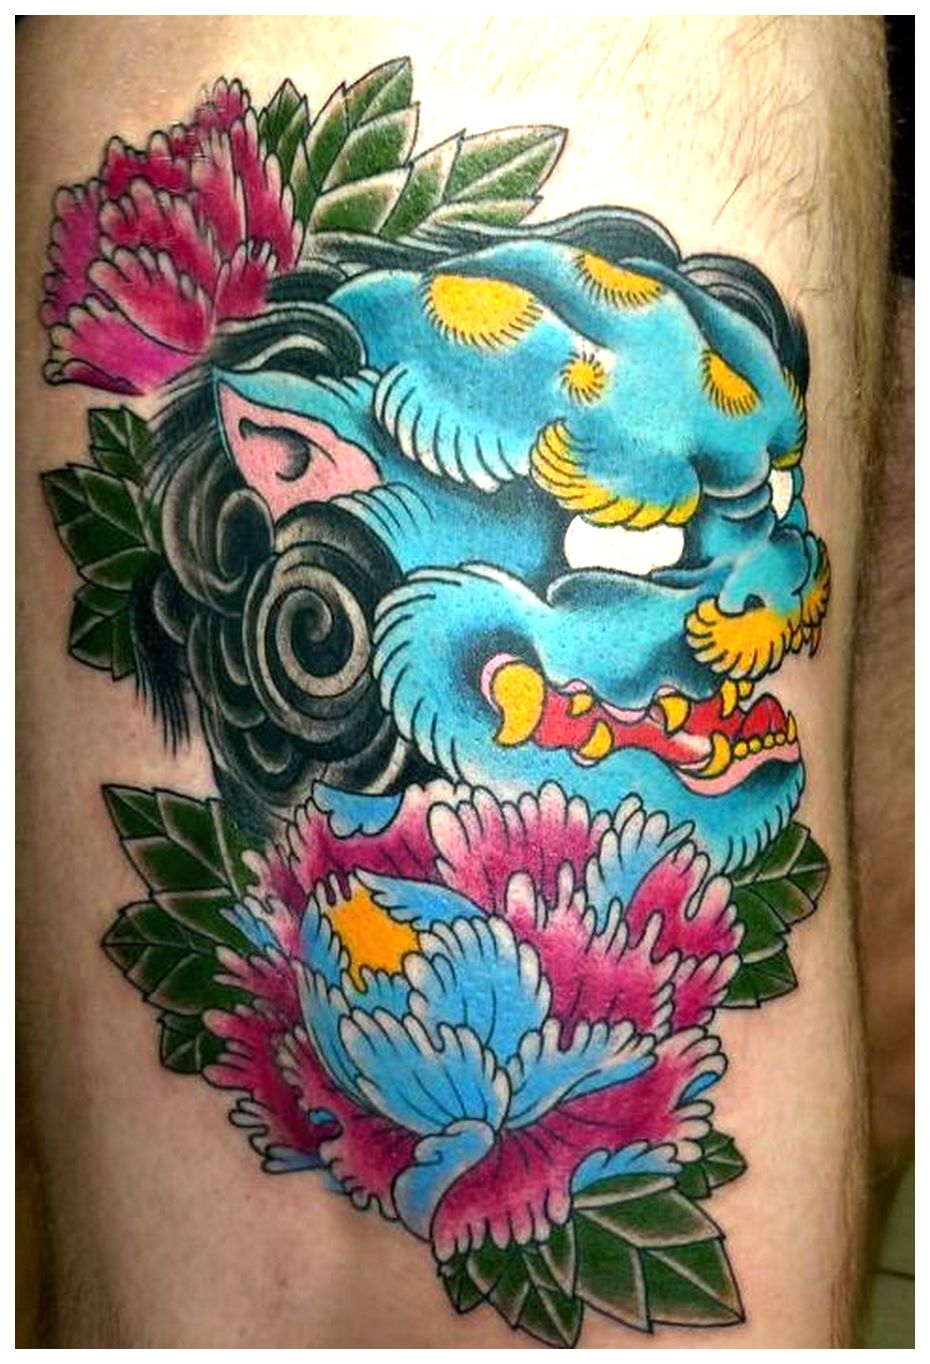 foo dog tattoo inner arm